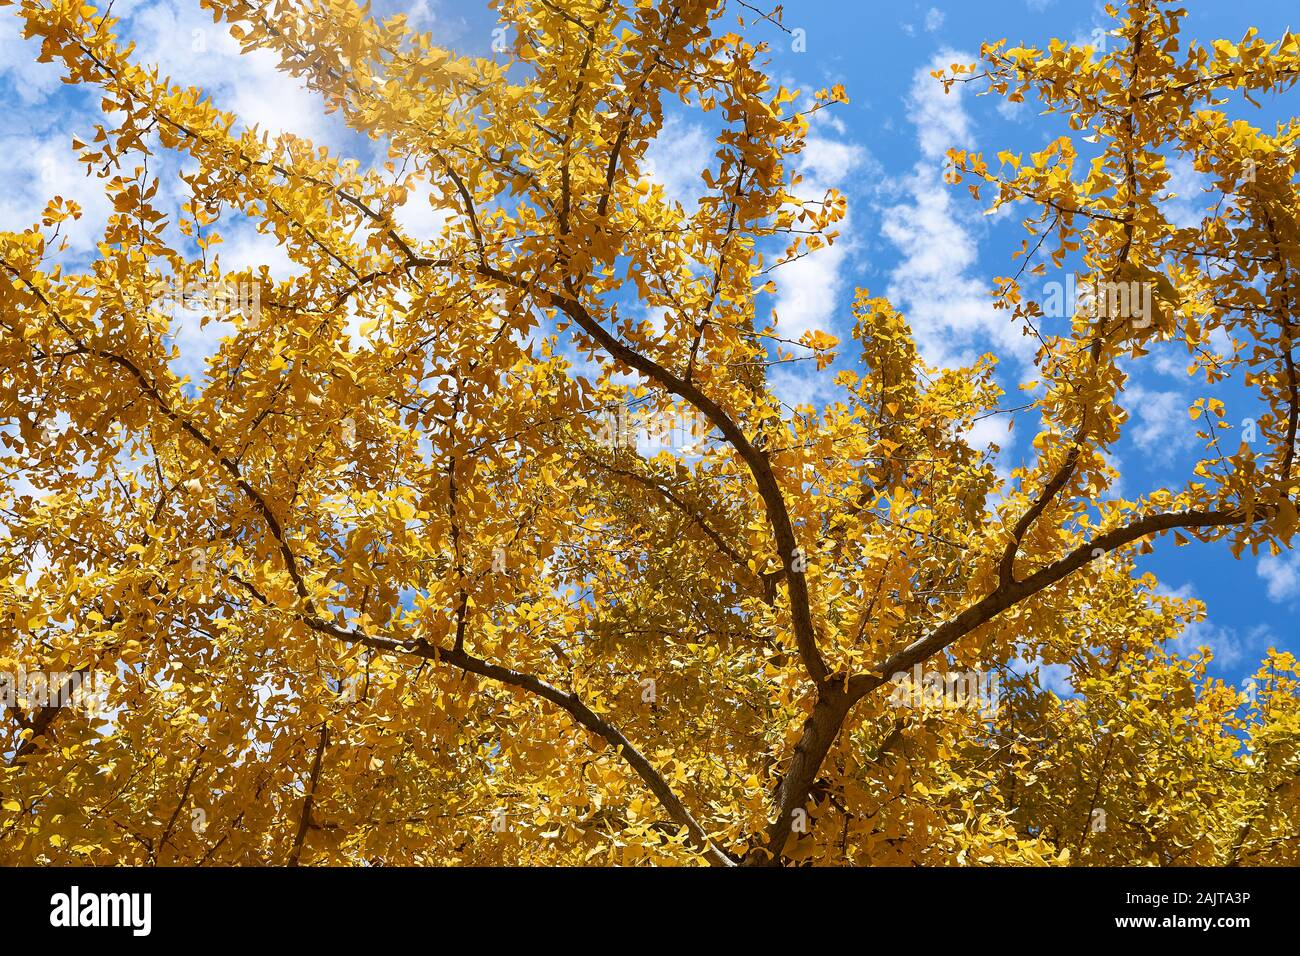 ginkgo-biloba-maidenhair-tree-in-autumn-with-bright-yellow-leaves-stands-in-asakusa-tokyo-with-bright-blue-sky-background-2AJTA3P.jpg